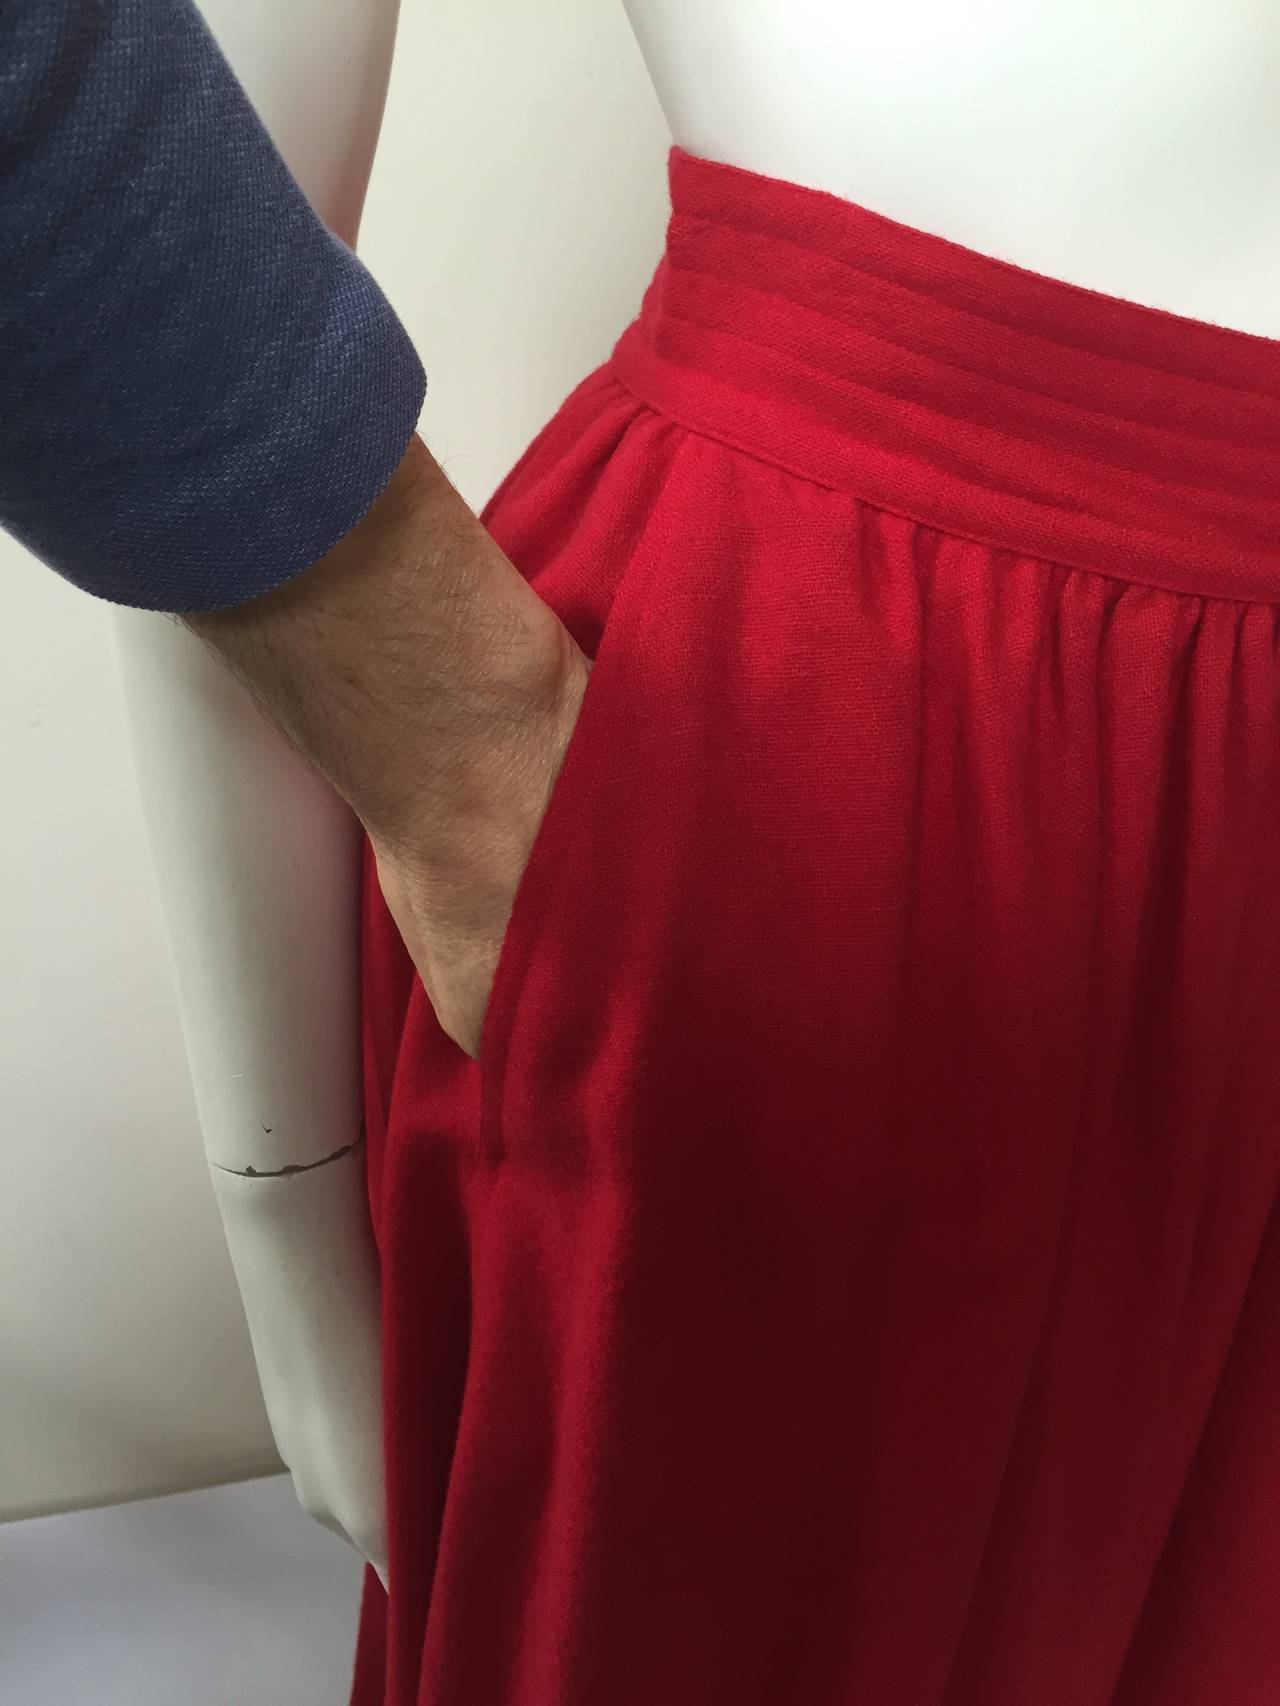 Saint Laurent Rive Gauche 70s red skirt size 4. 3